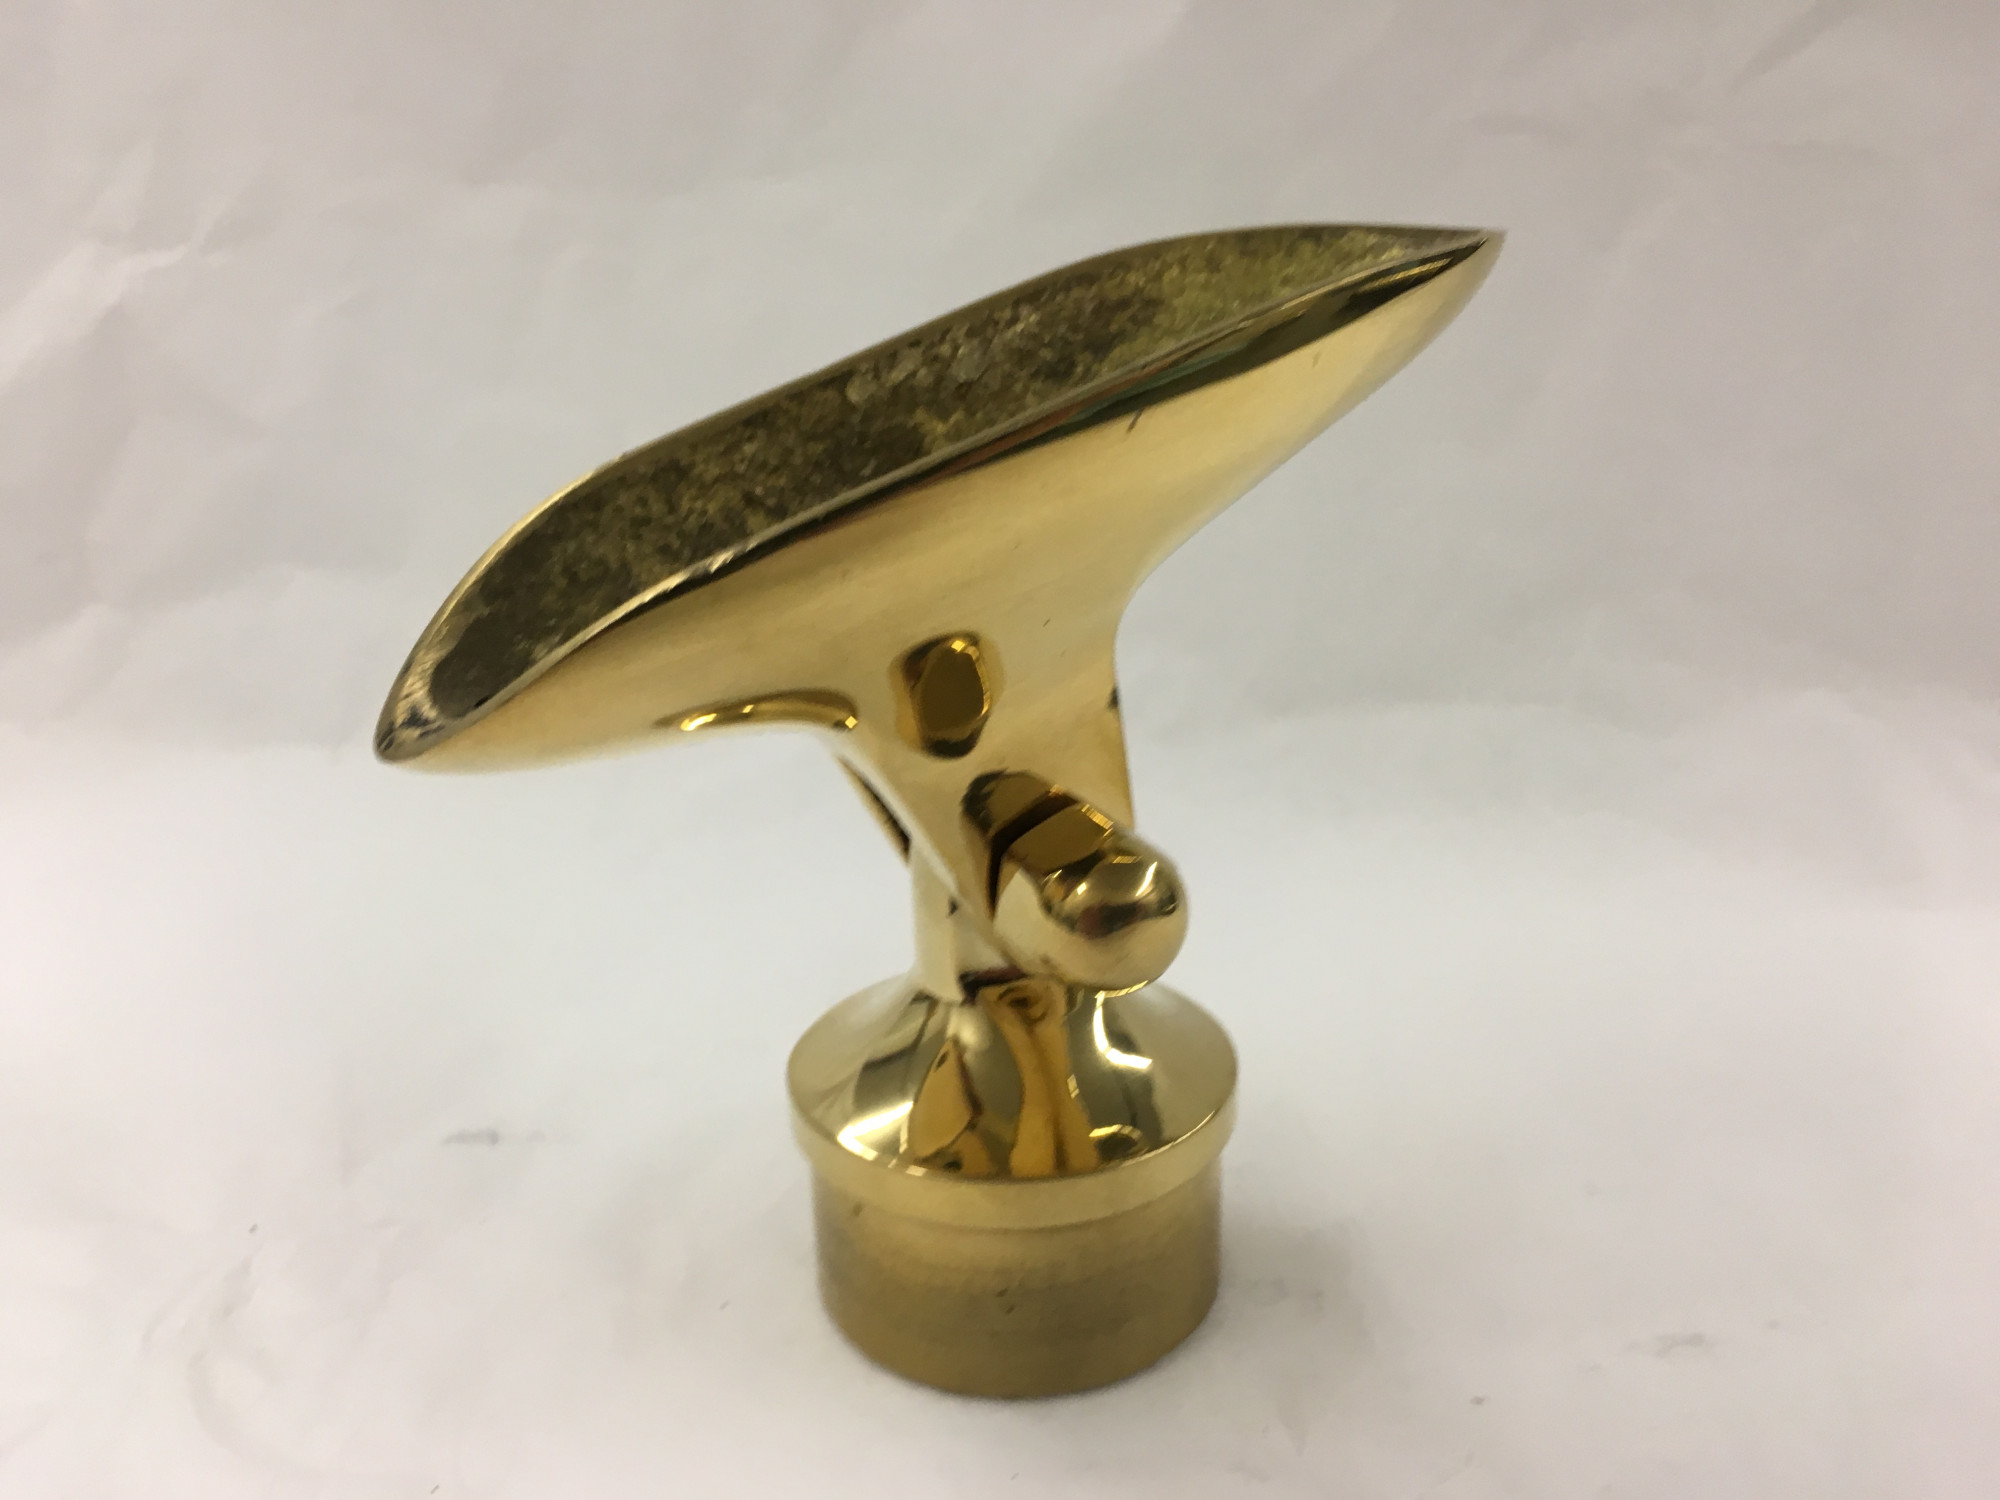 Polished Brass Adjustable Saddle Adapter  (1-1/2in)